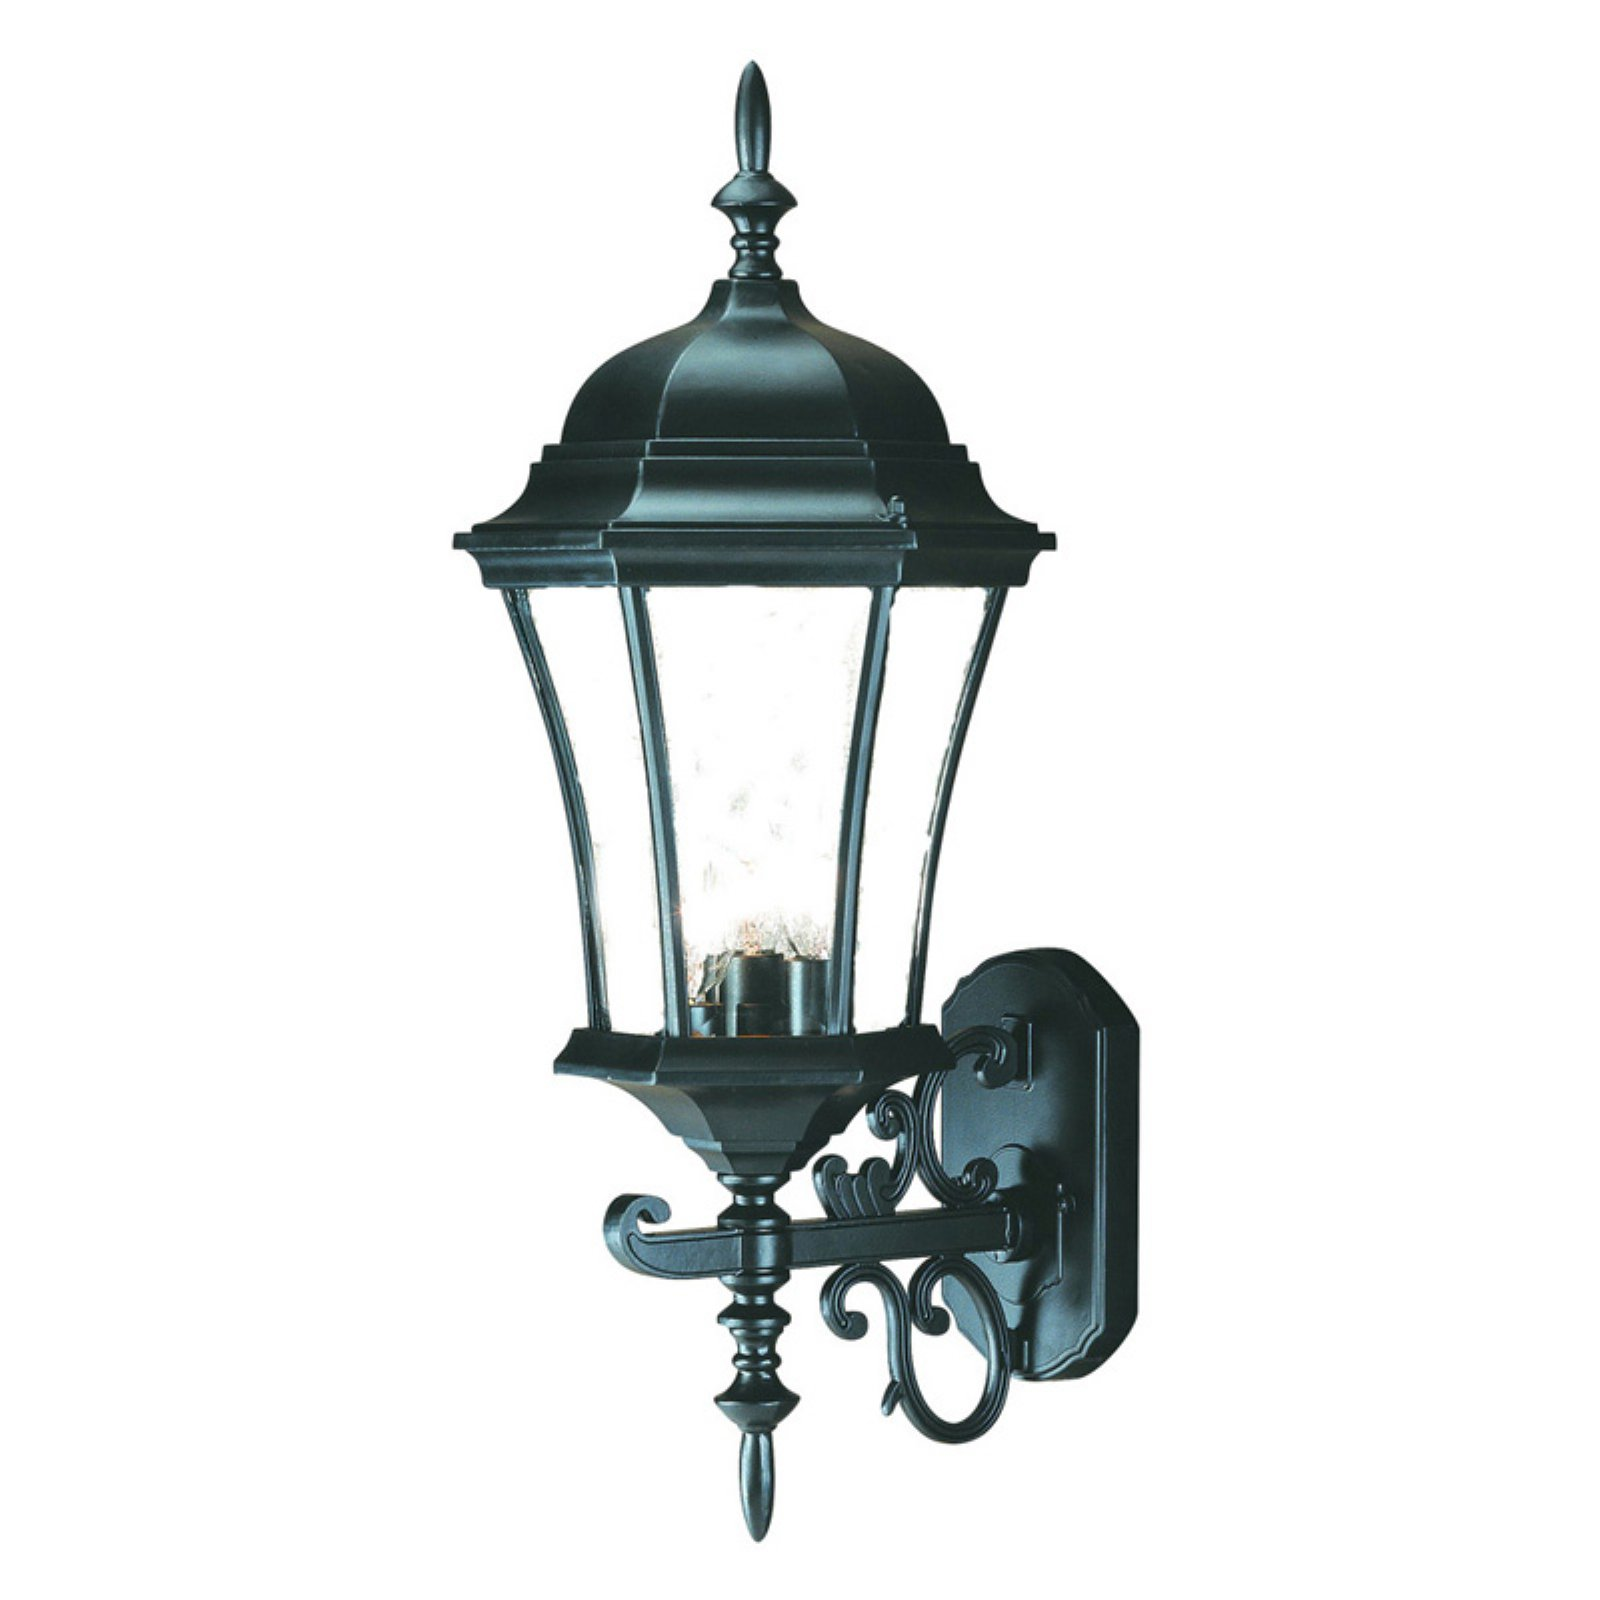 Acclaim Lighting Bryn Mawr 3 Light Outdoor Wall Mount Light Fixture